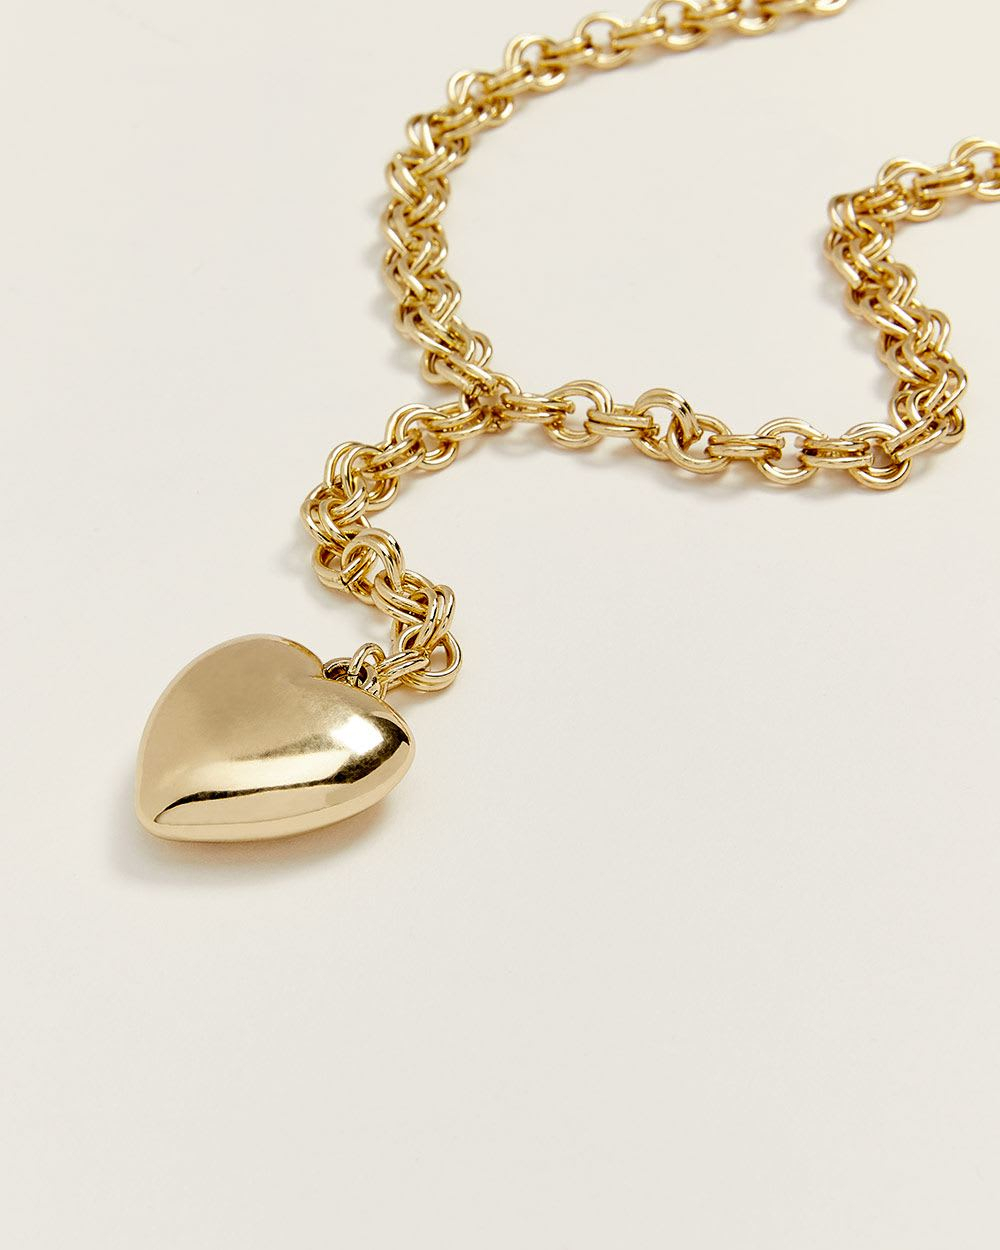 Gold Heart Chain Necklace Intended For Current Joined Hearts Chain Necklaces (View 7 of 25)